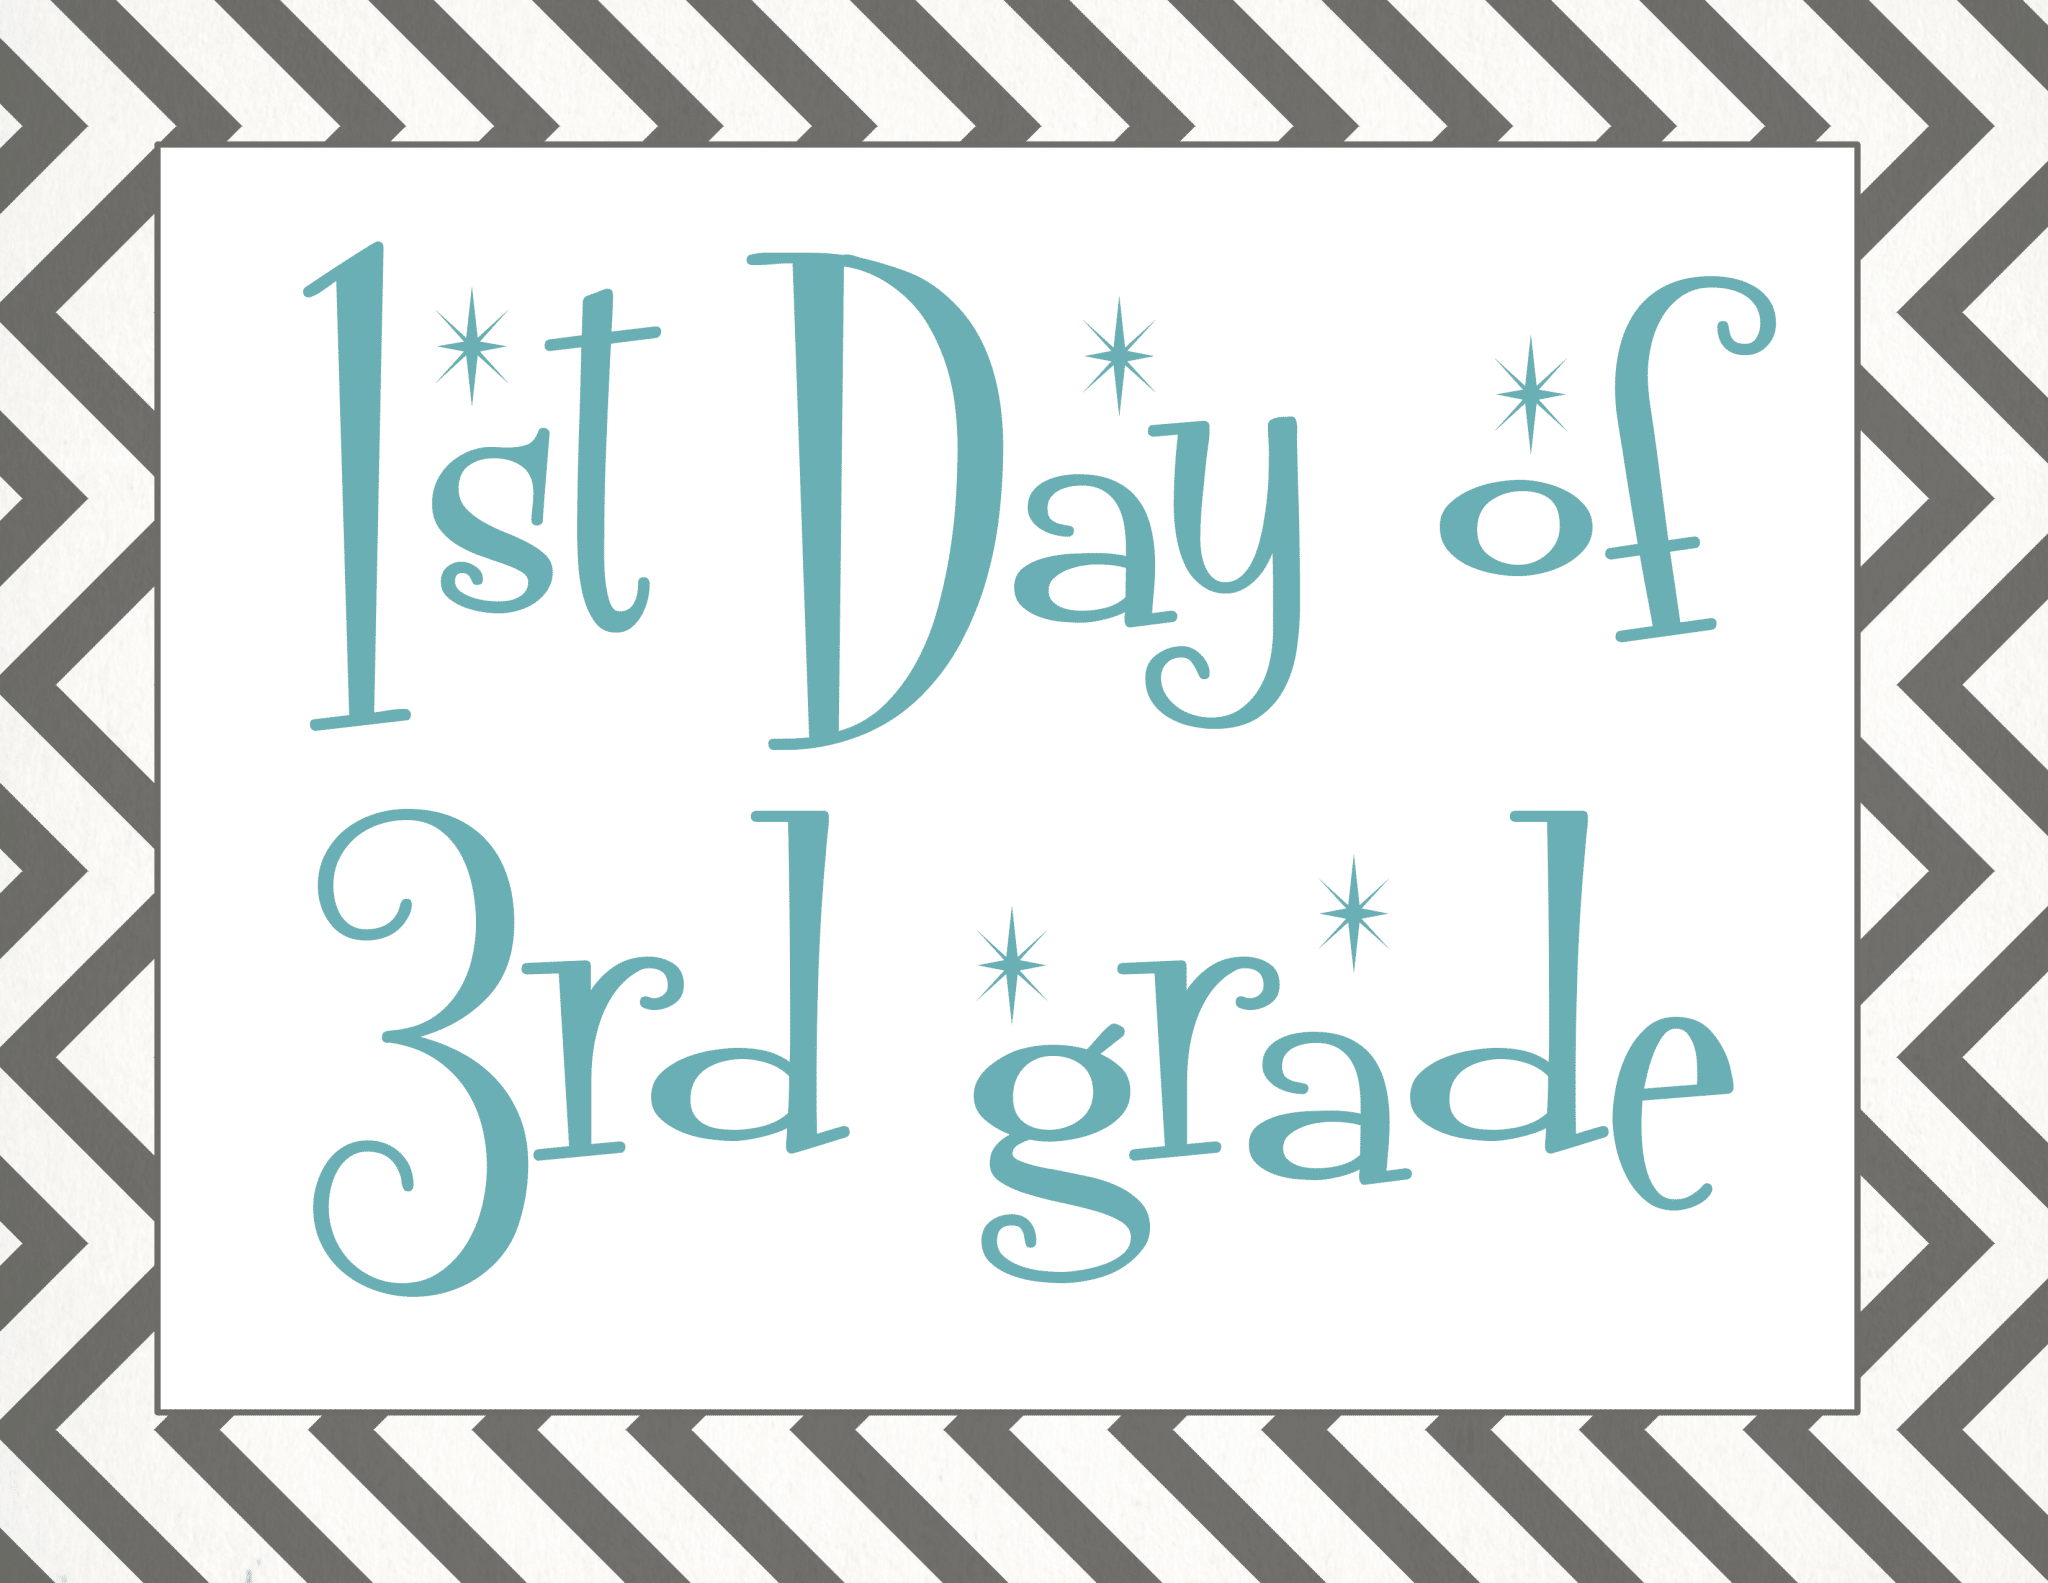 photograph regarding First Day of 3rd Grade Sign Printable referred to as Back again towards College or university: Totally free Very first Working day of Faculty Printables